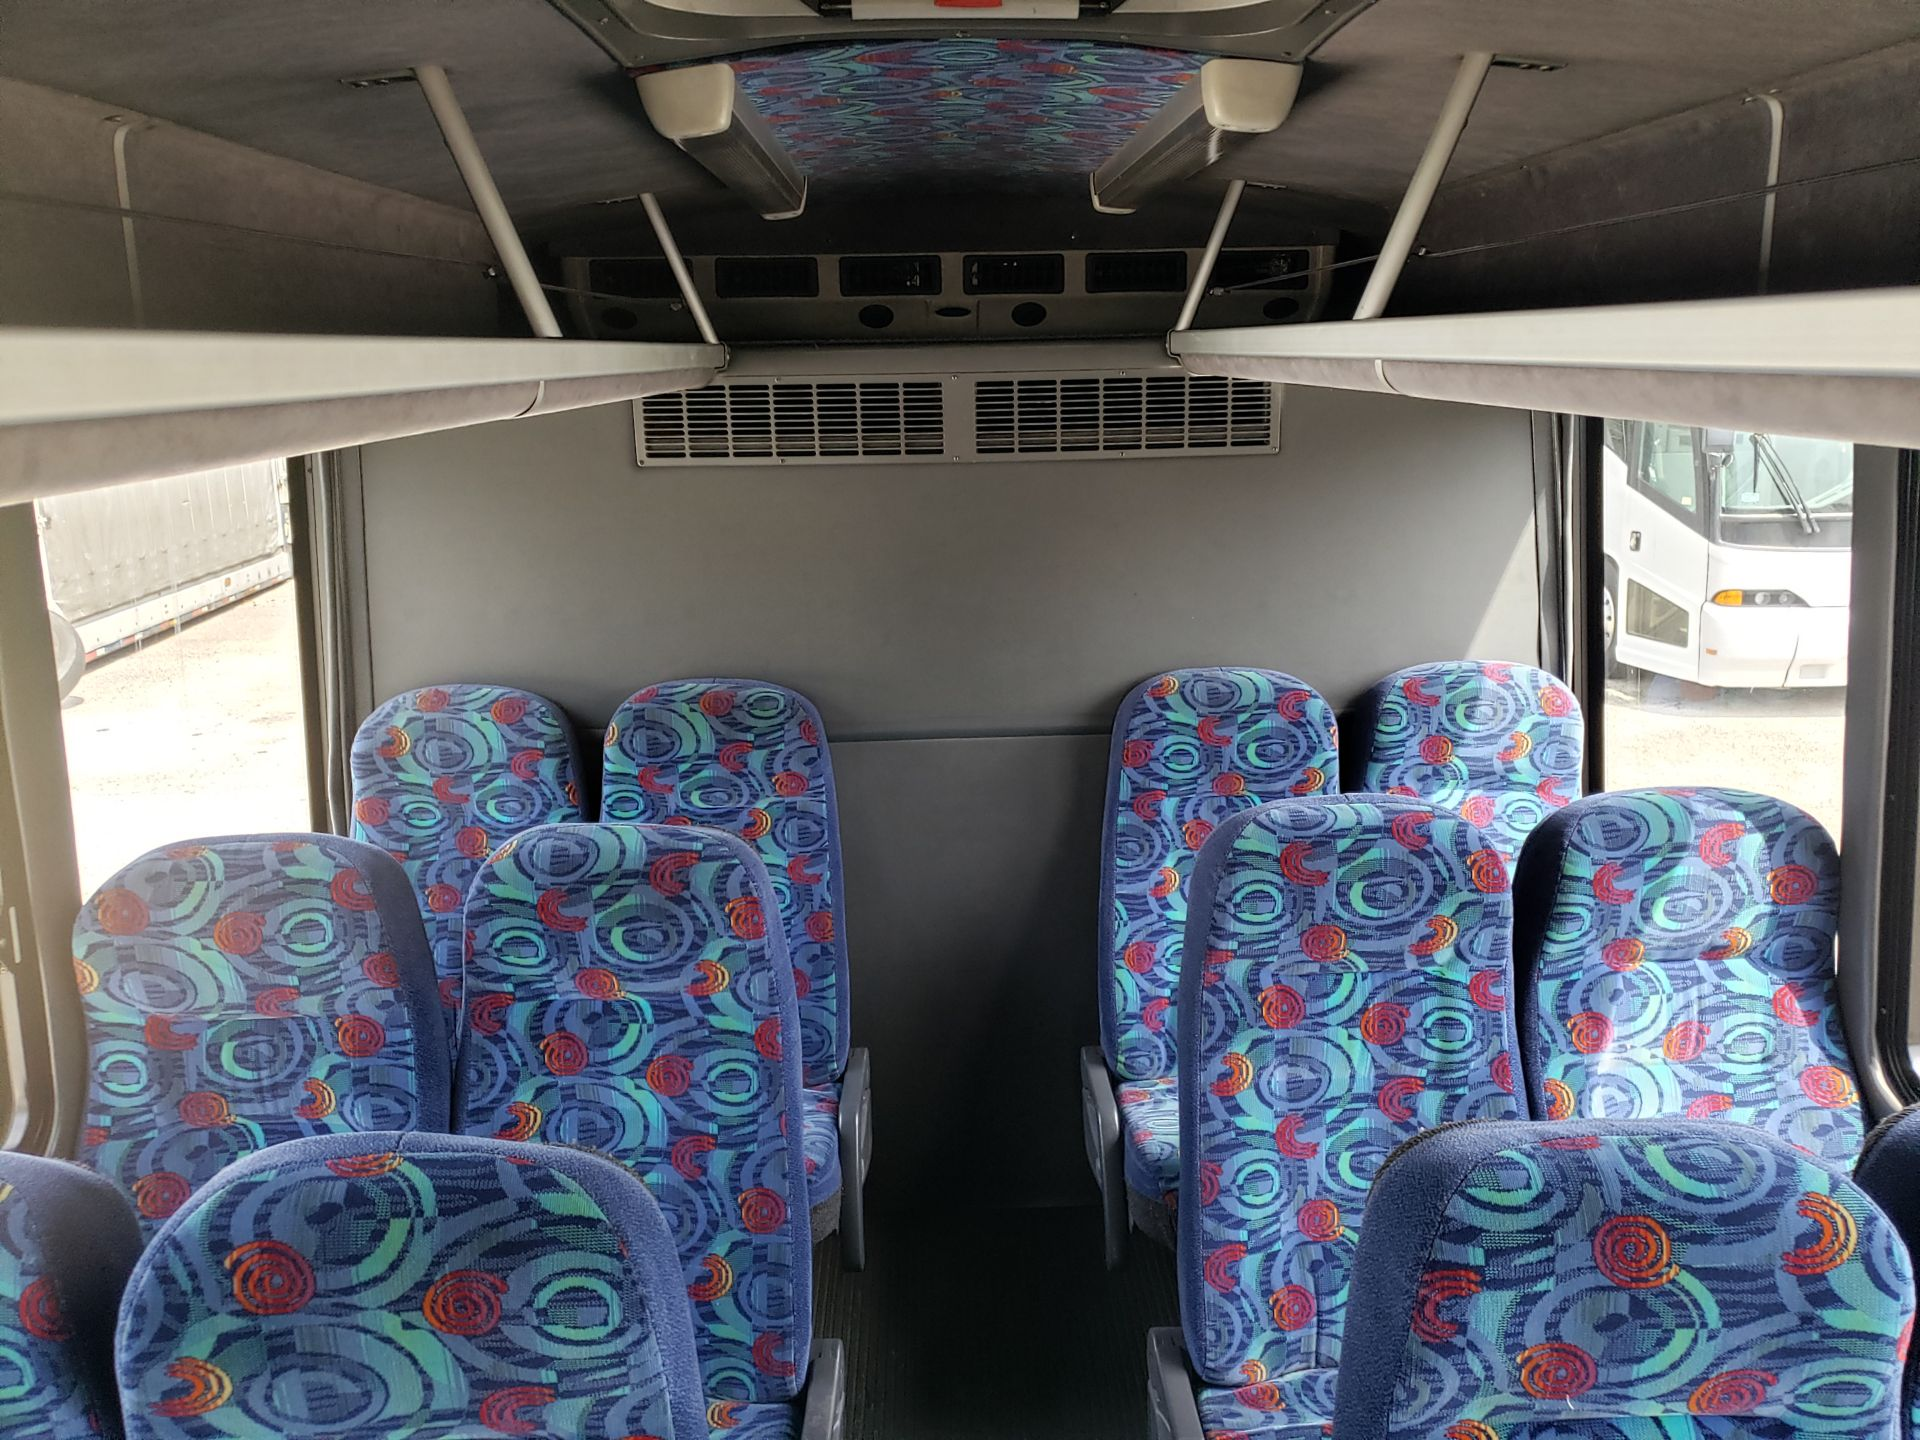 2006 Chevrolet C5500 30-Pass General Coach Champion Bus - Image 9 of 23